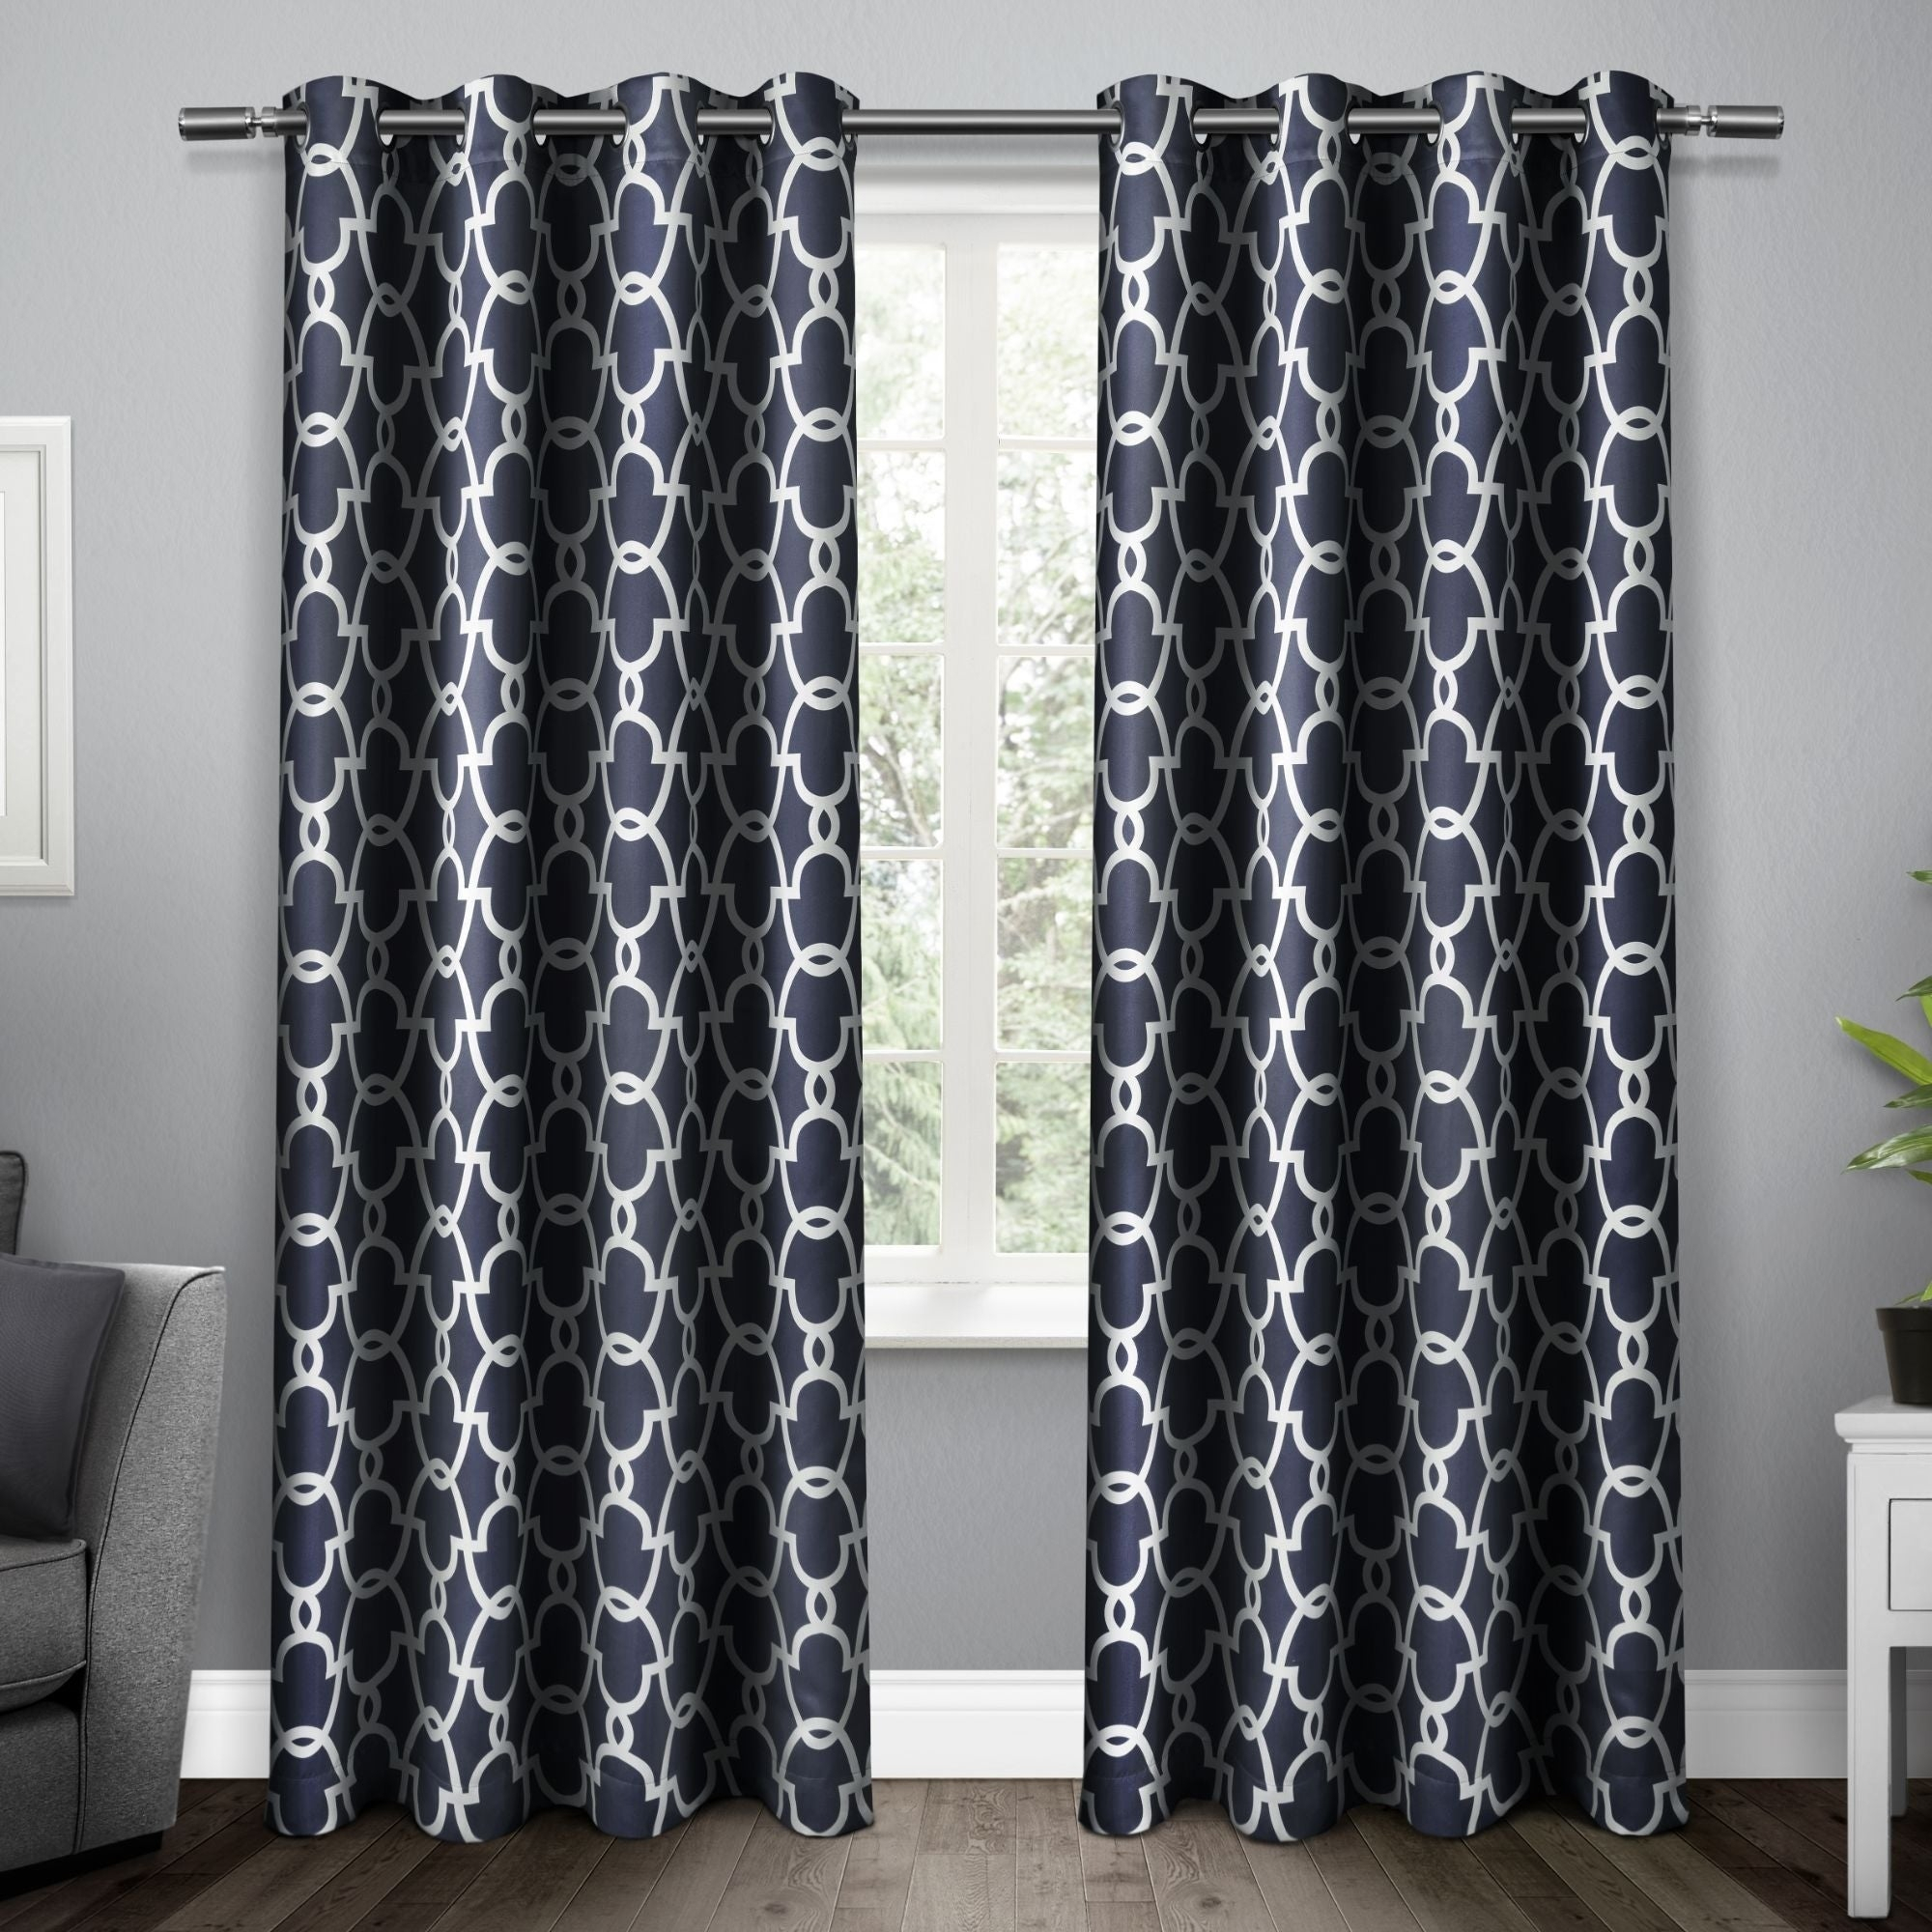 The Curated Nomad Vicksburg Thermal Woven Blackout Grommet Top Curtain Panel Pair Within The Curated Nomad Duane Blackout Curtain Panel Pairs (View 12 of 30)